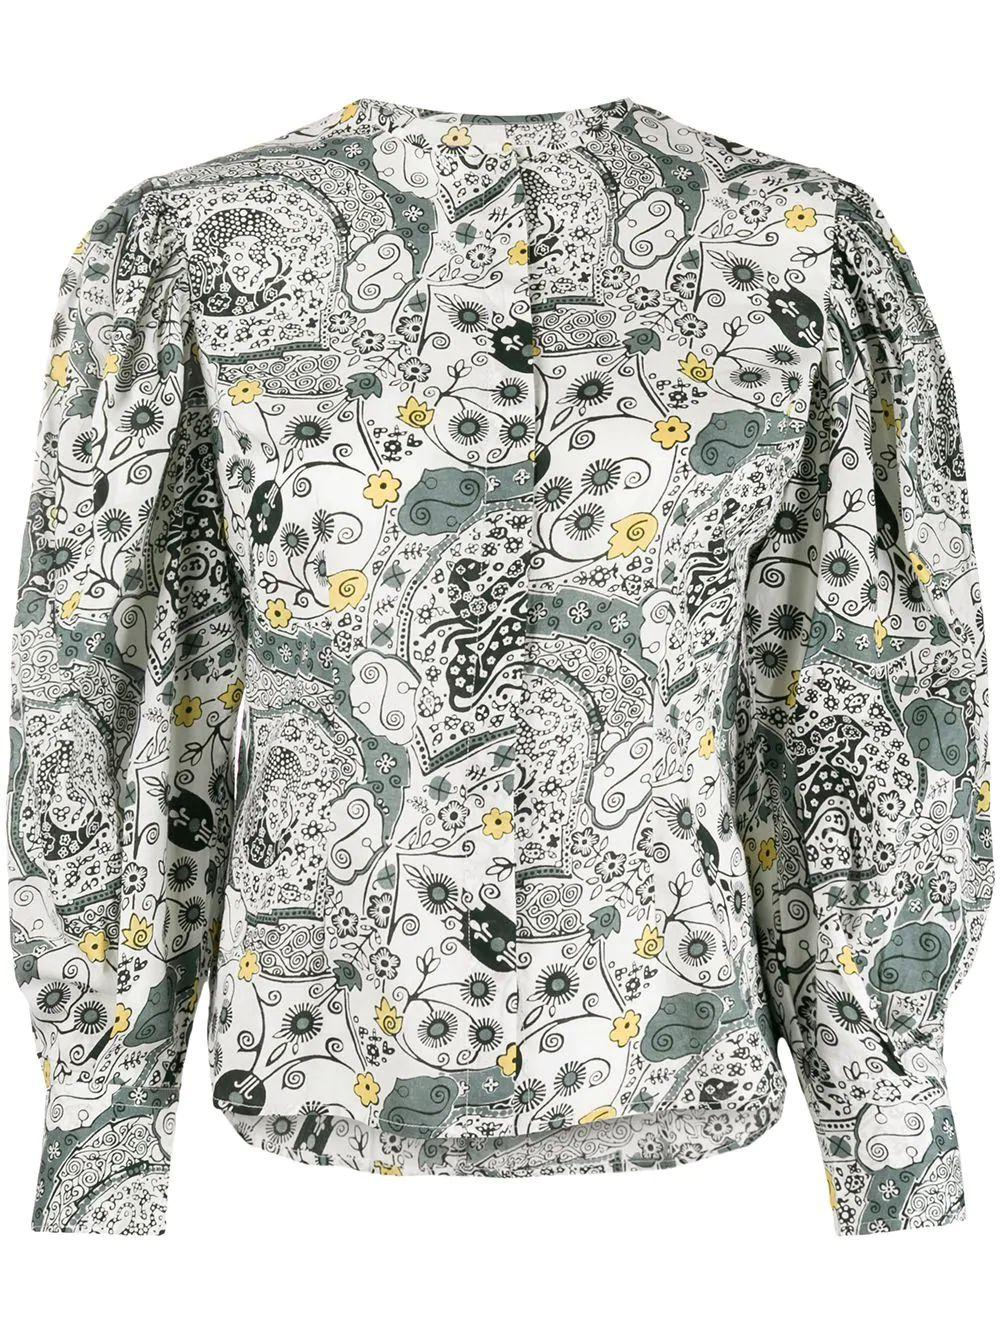 Long Sleeve Printed Button Up Blouse Item # UNATIL